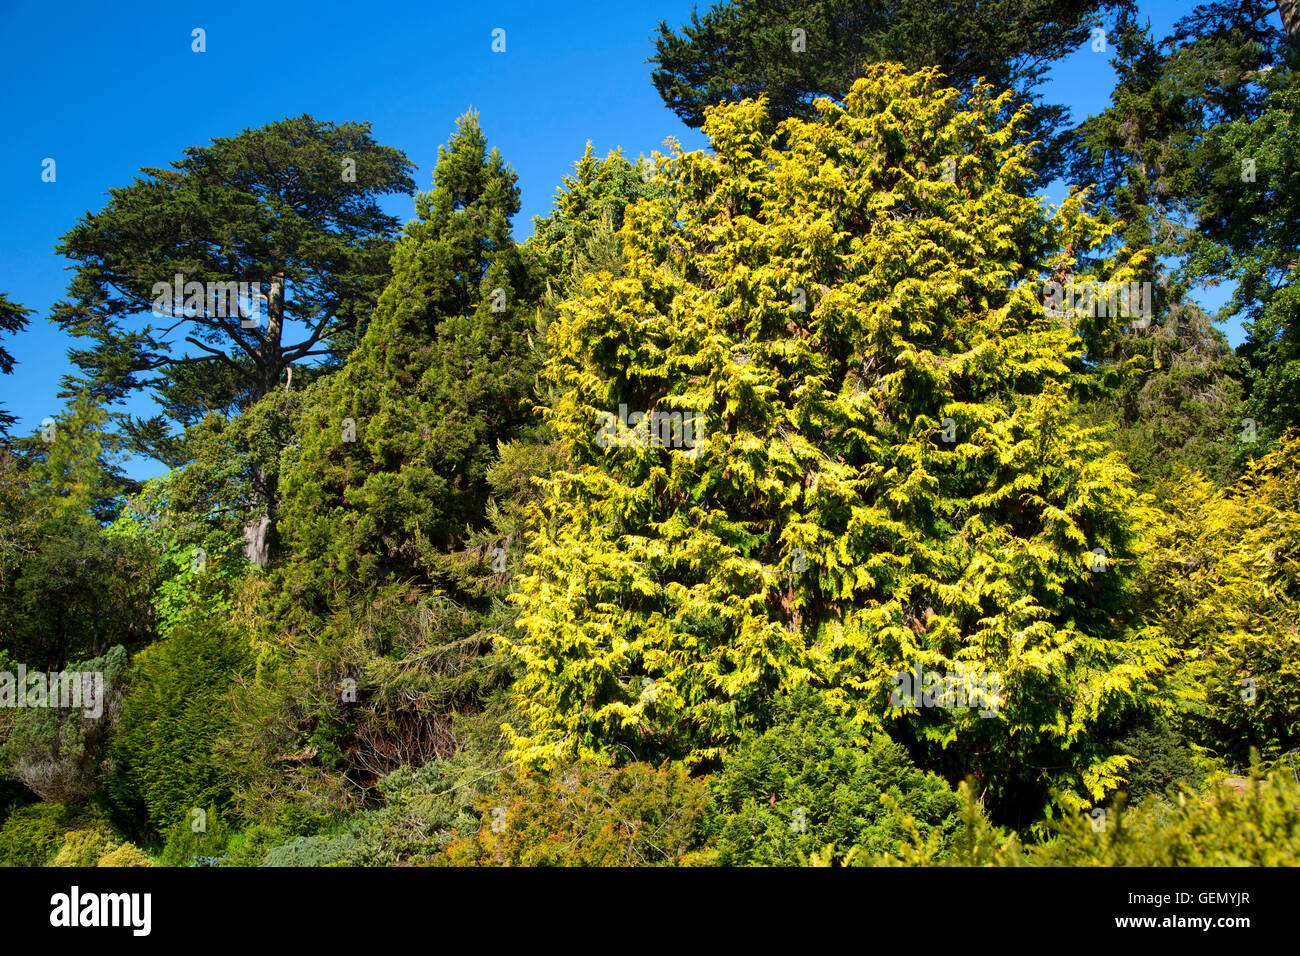 Chamaecyparis obtusa (Crippsii), San Francisco Botanical Garden, Golden Gate Park, San Francisco, California - Stock Image